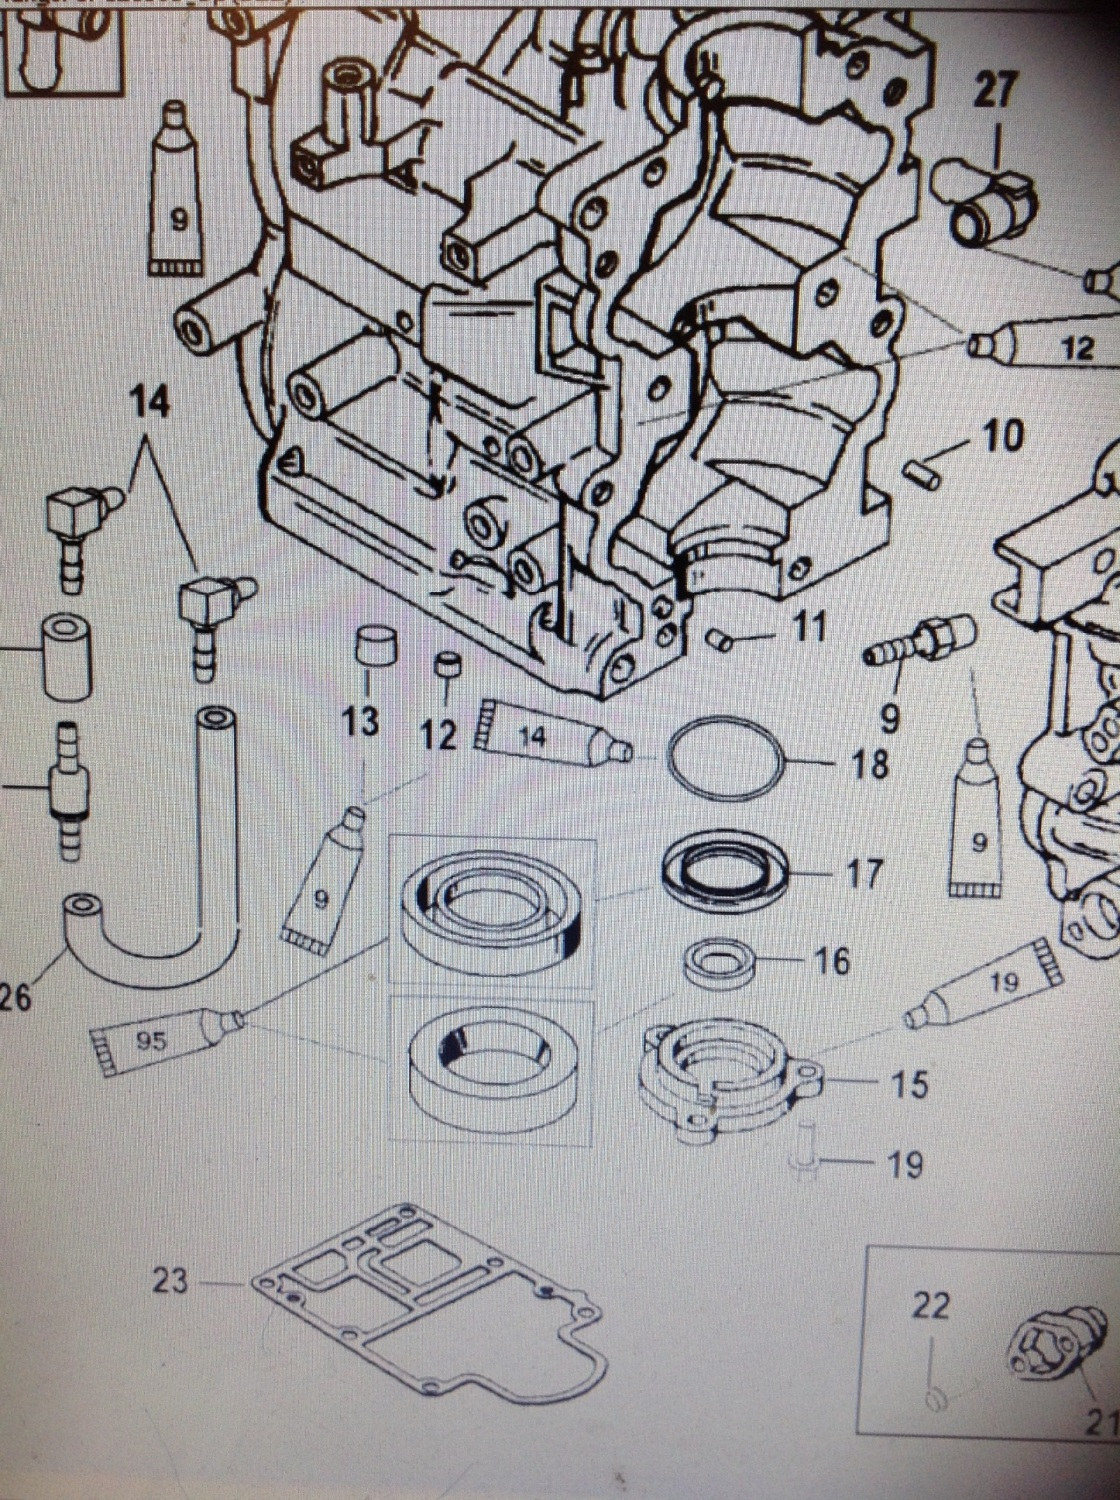 27-8M0000822 / 27-828553 POWERHEAD BASE GASKET ITEM NUMBER  23 IN PICTURE